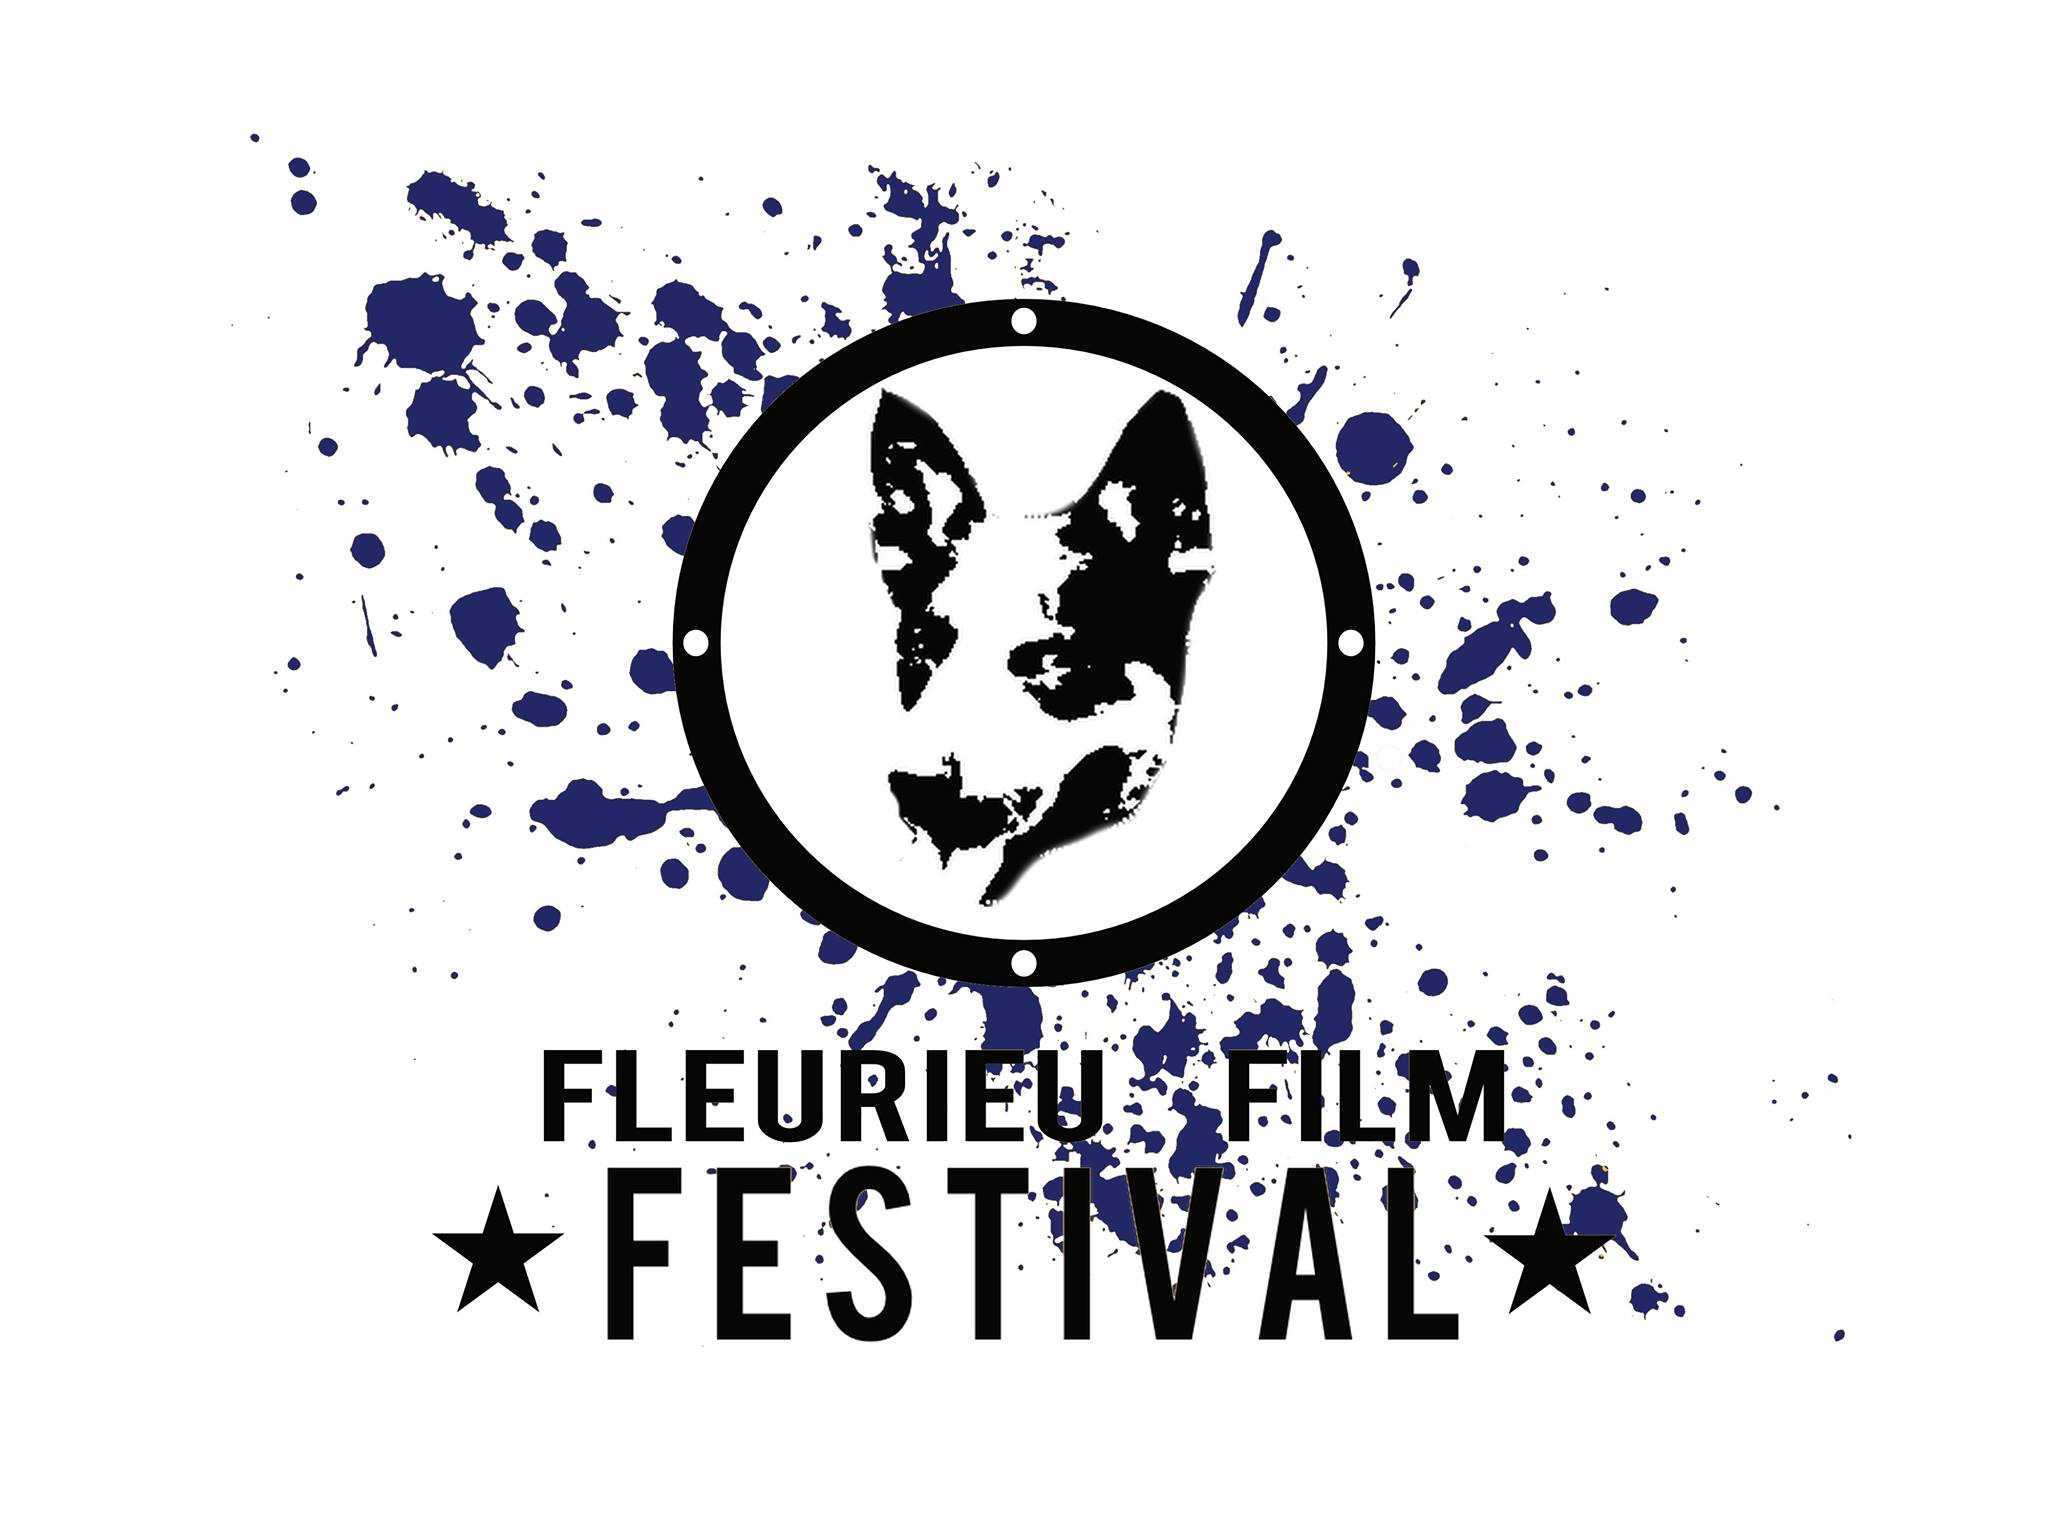 Fleurieu Film Festival - Surfers Gold Coast